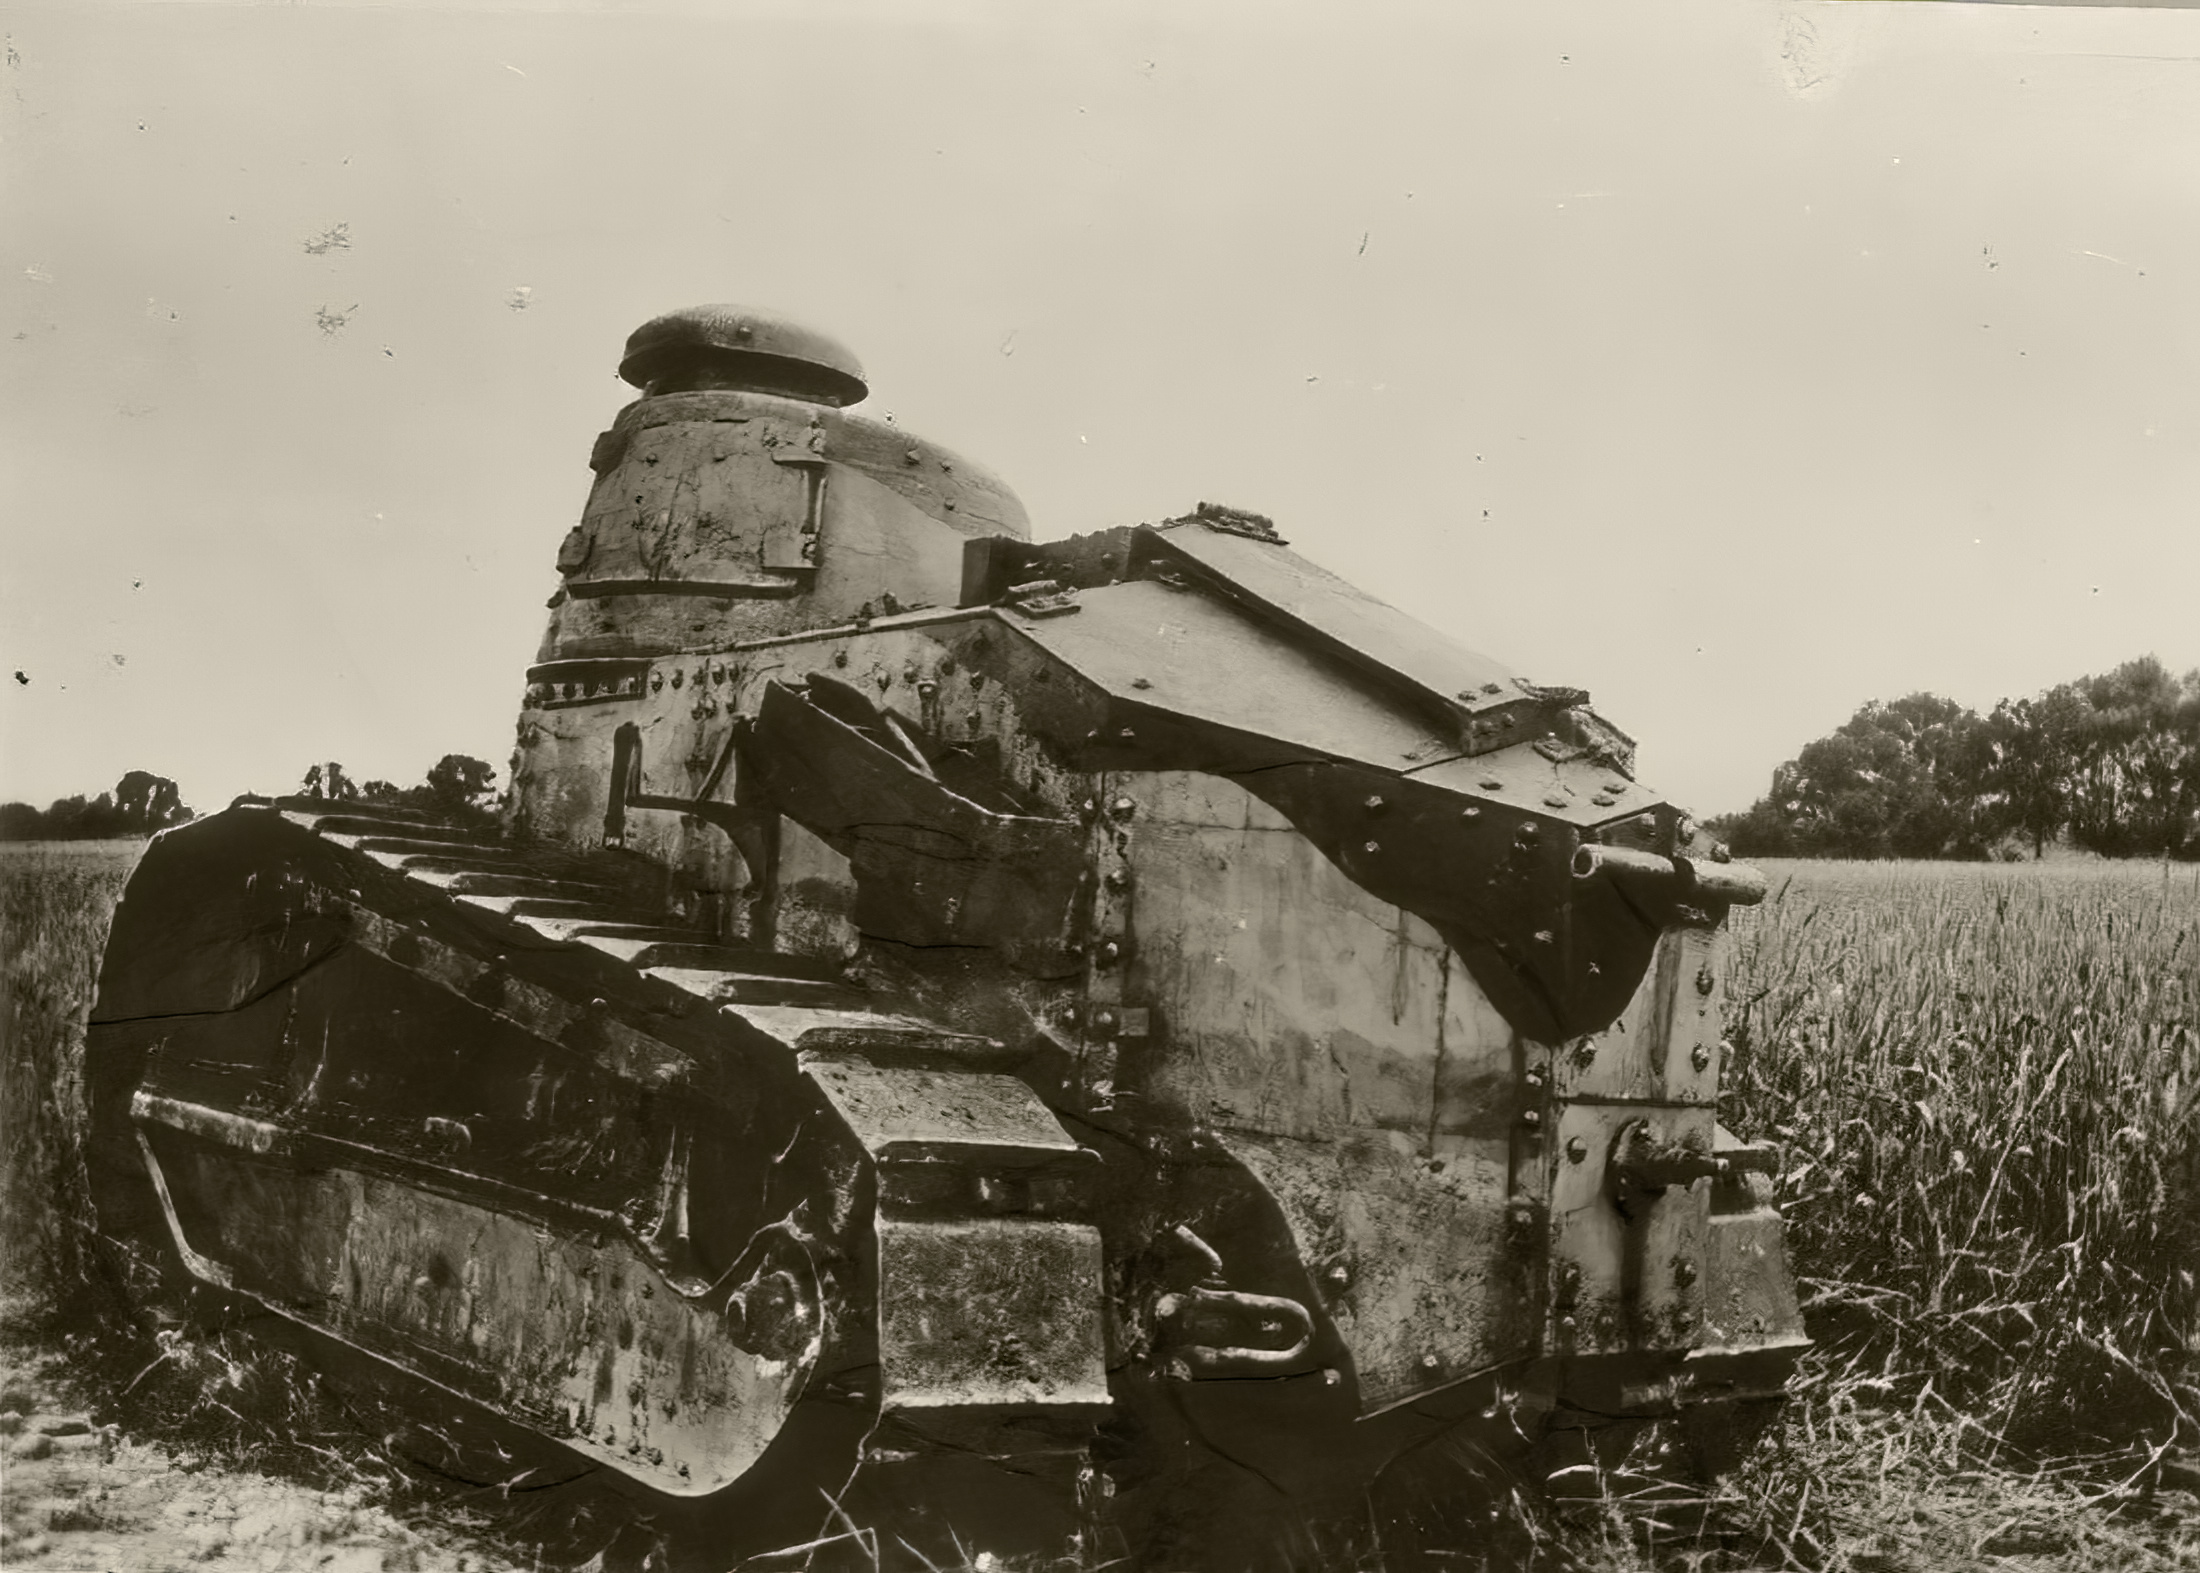 French Army Renault FT 17 abandoned during the Battle of France 1940 ebay 01